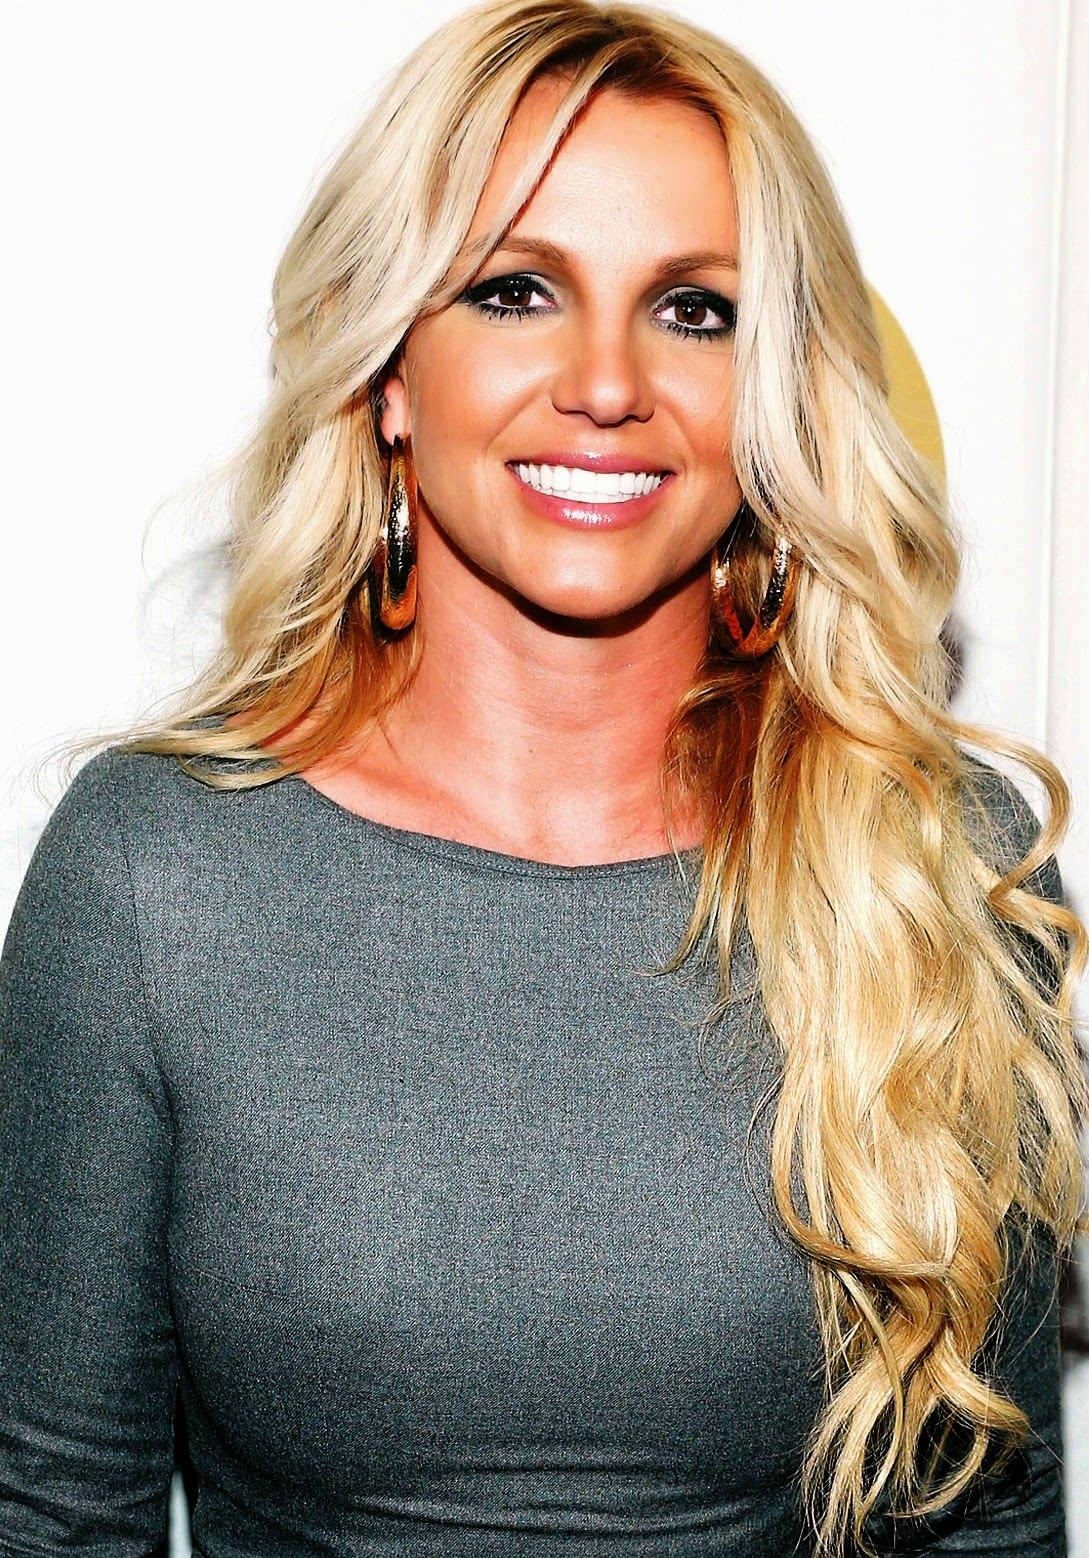 Celebrity Biography and photos: Britney Spears Britney Spears